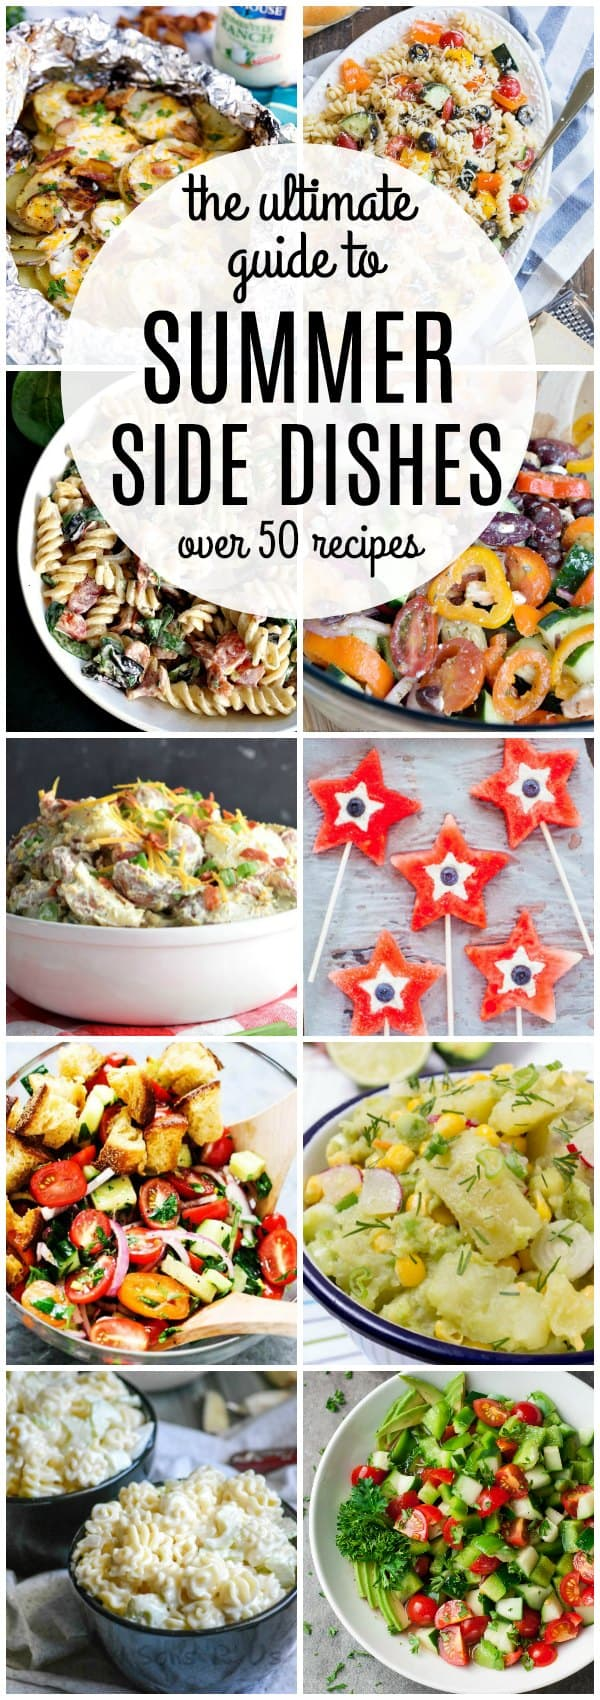 Summer Side Dishes